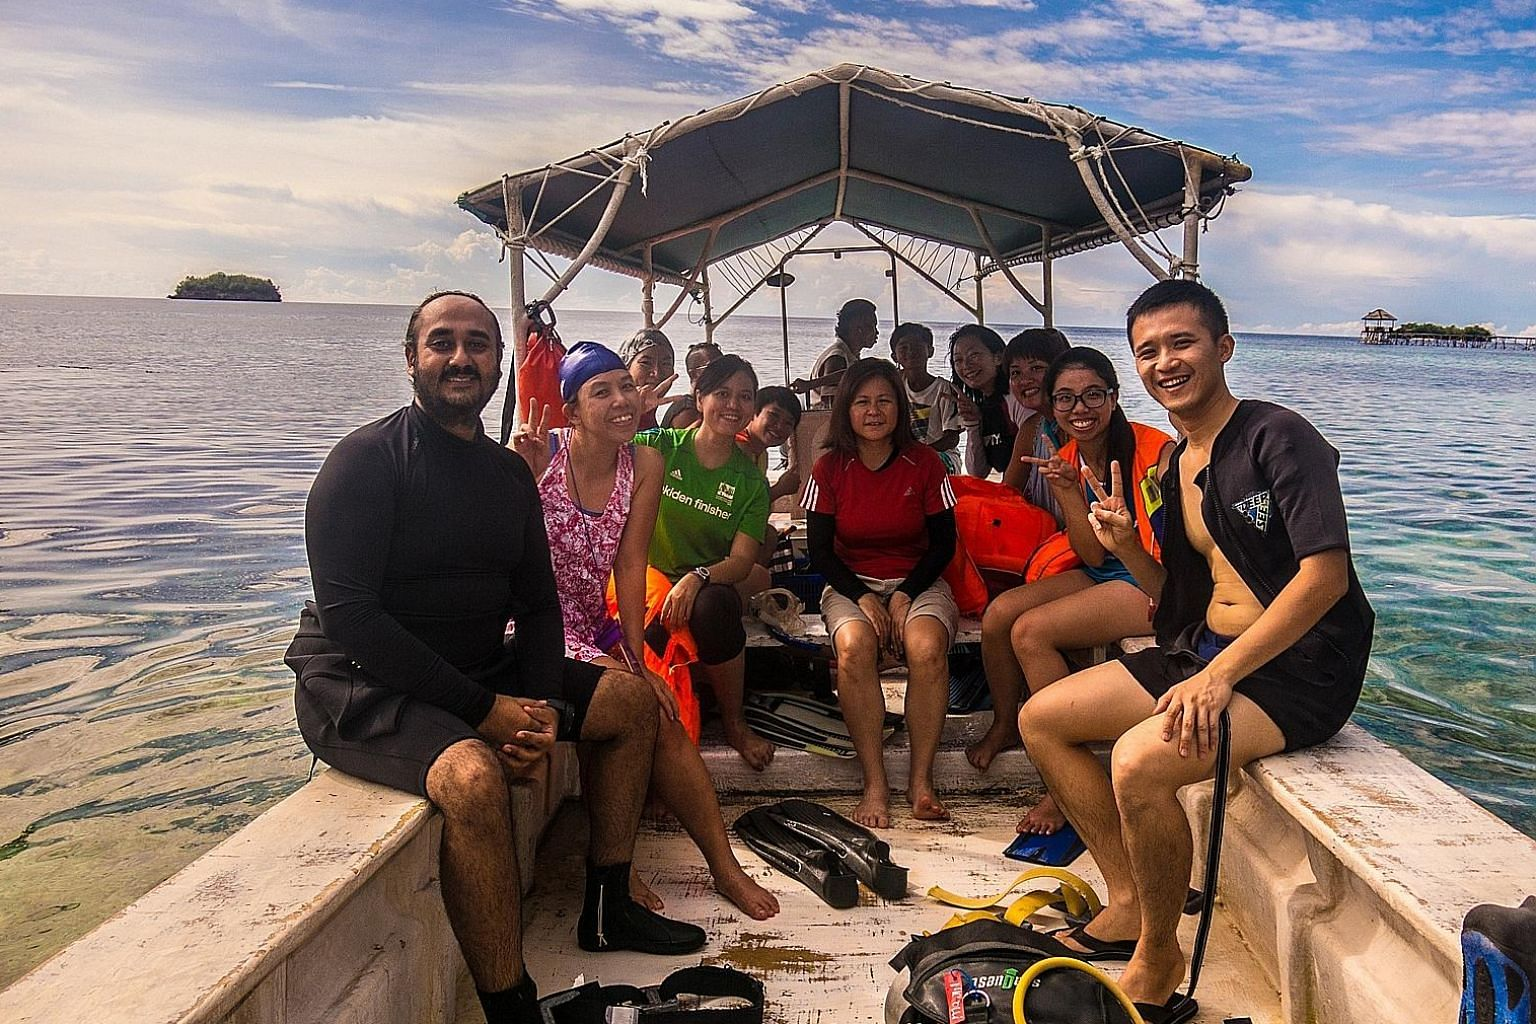 Ms Chong Lee Ling (in red) leading a snorkelling trip to Indonesia's Togean Islands in August last year. 3Playgrounds' adventure tours are filled with sports and outdoor activities, such as rafting, cycling, trekking and horse-riding, and 70 per cent